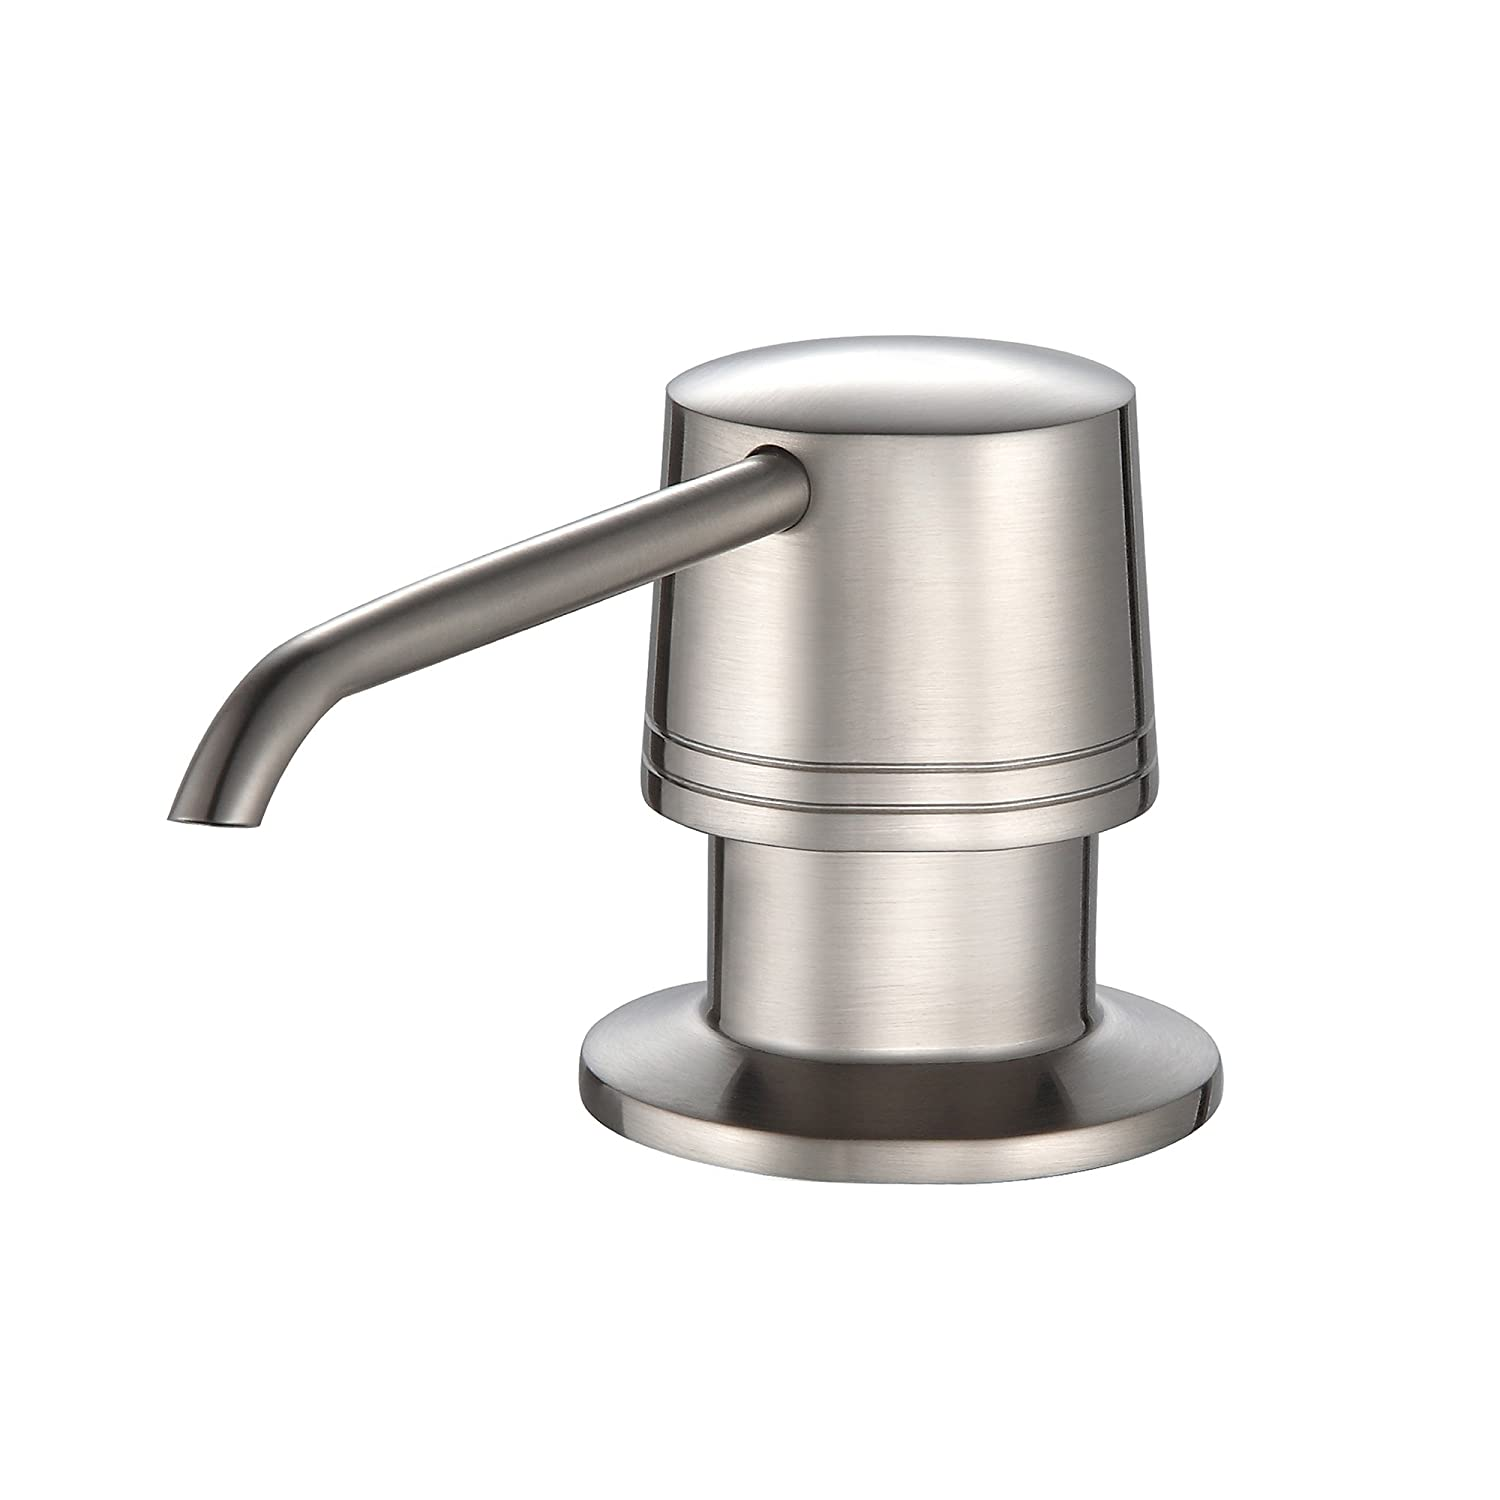 Kraus 32 inch Undermount Double Bowl Stainless Steel Kitchen Sink with Stainless Steel Finish Kitchen Faucet and Soap Dispenser KBU22-KPF1612-KSD30SS